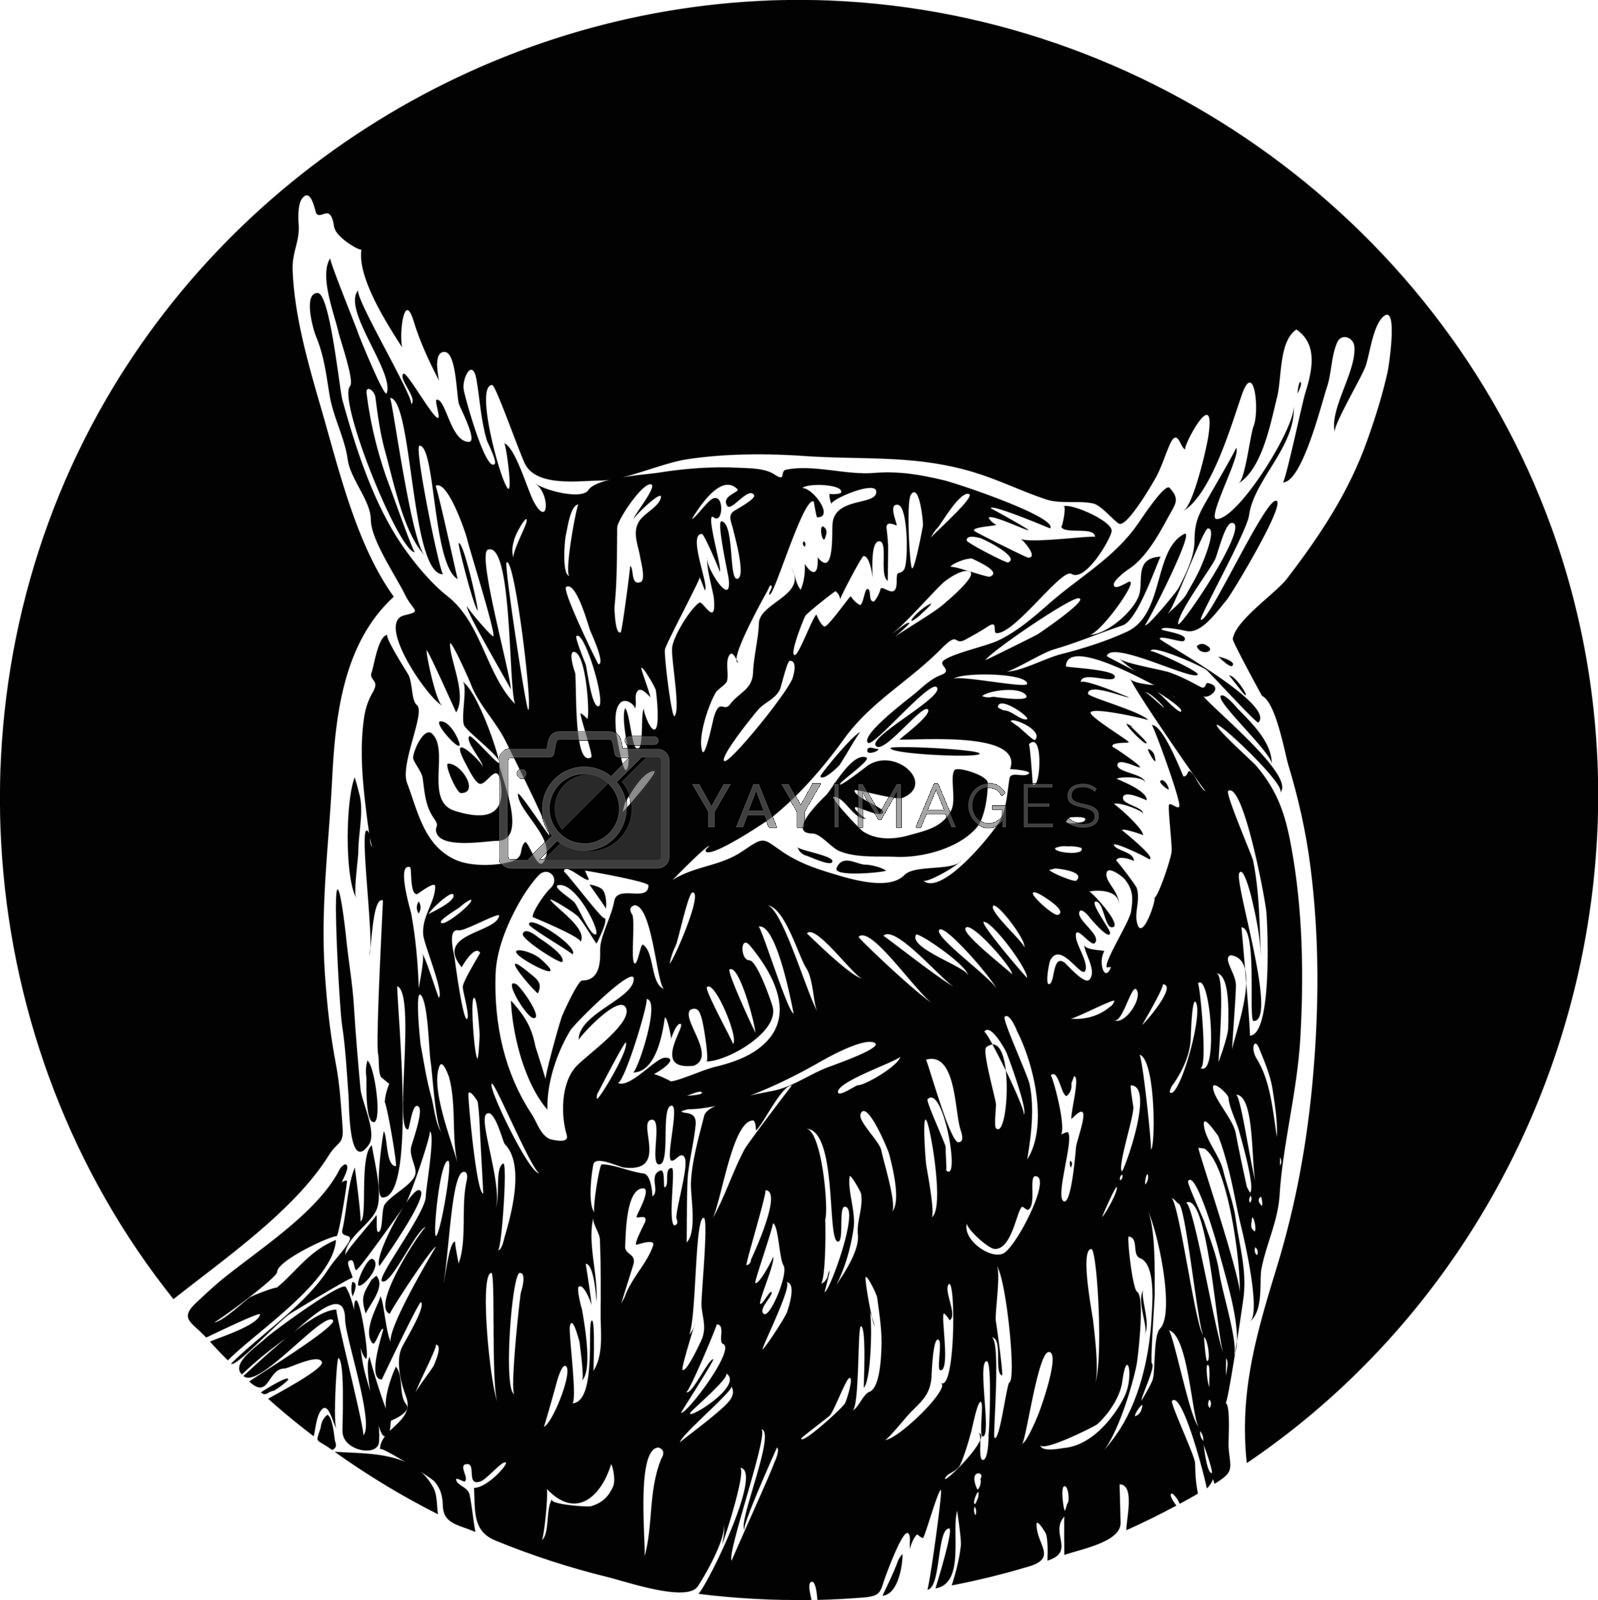 Retro woodcut style illustration of head of a great horned owl viewed from front set in circle on isolated background done in black and white.